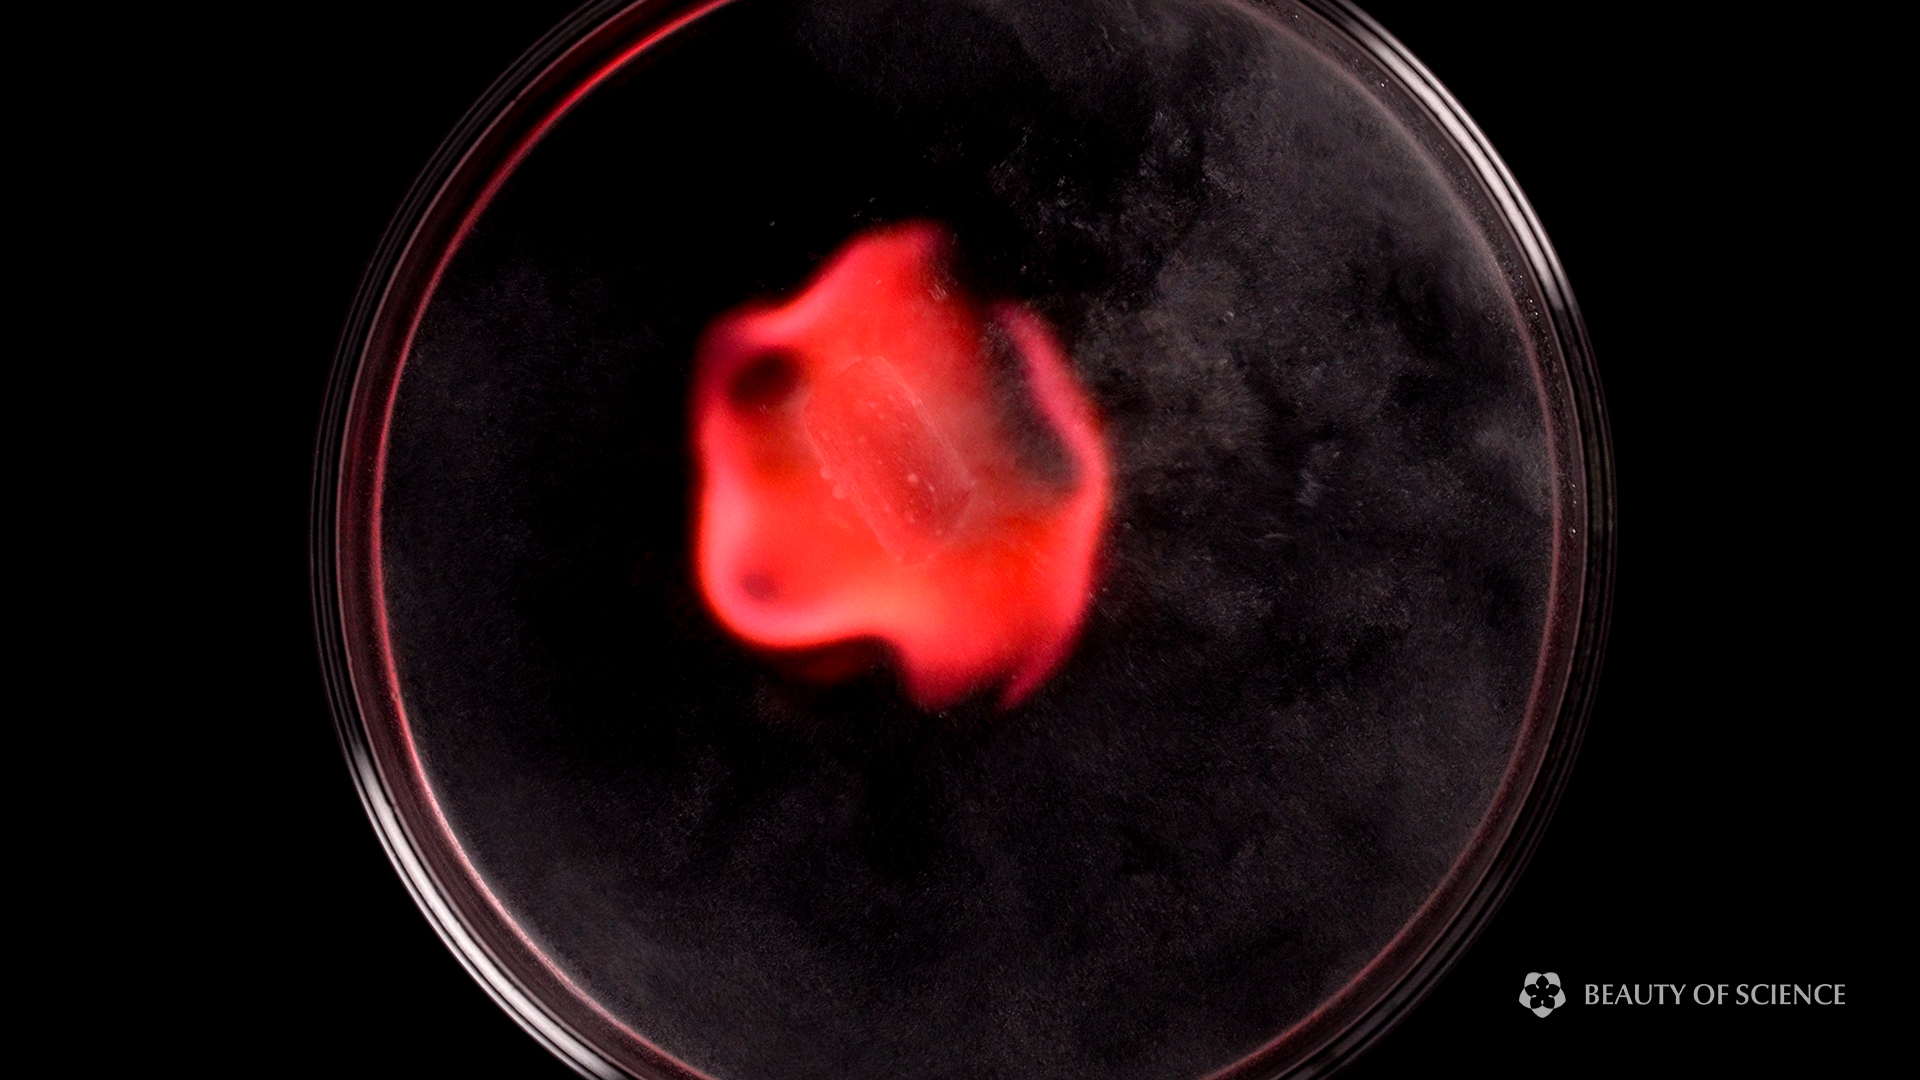 Combustion of hydrogen generated by the reaction between lithium and water